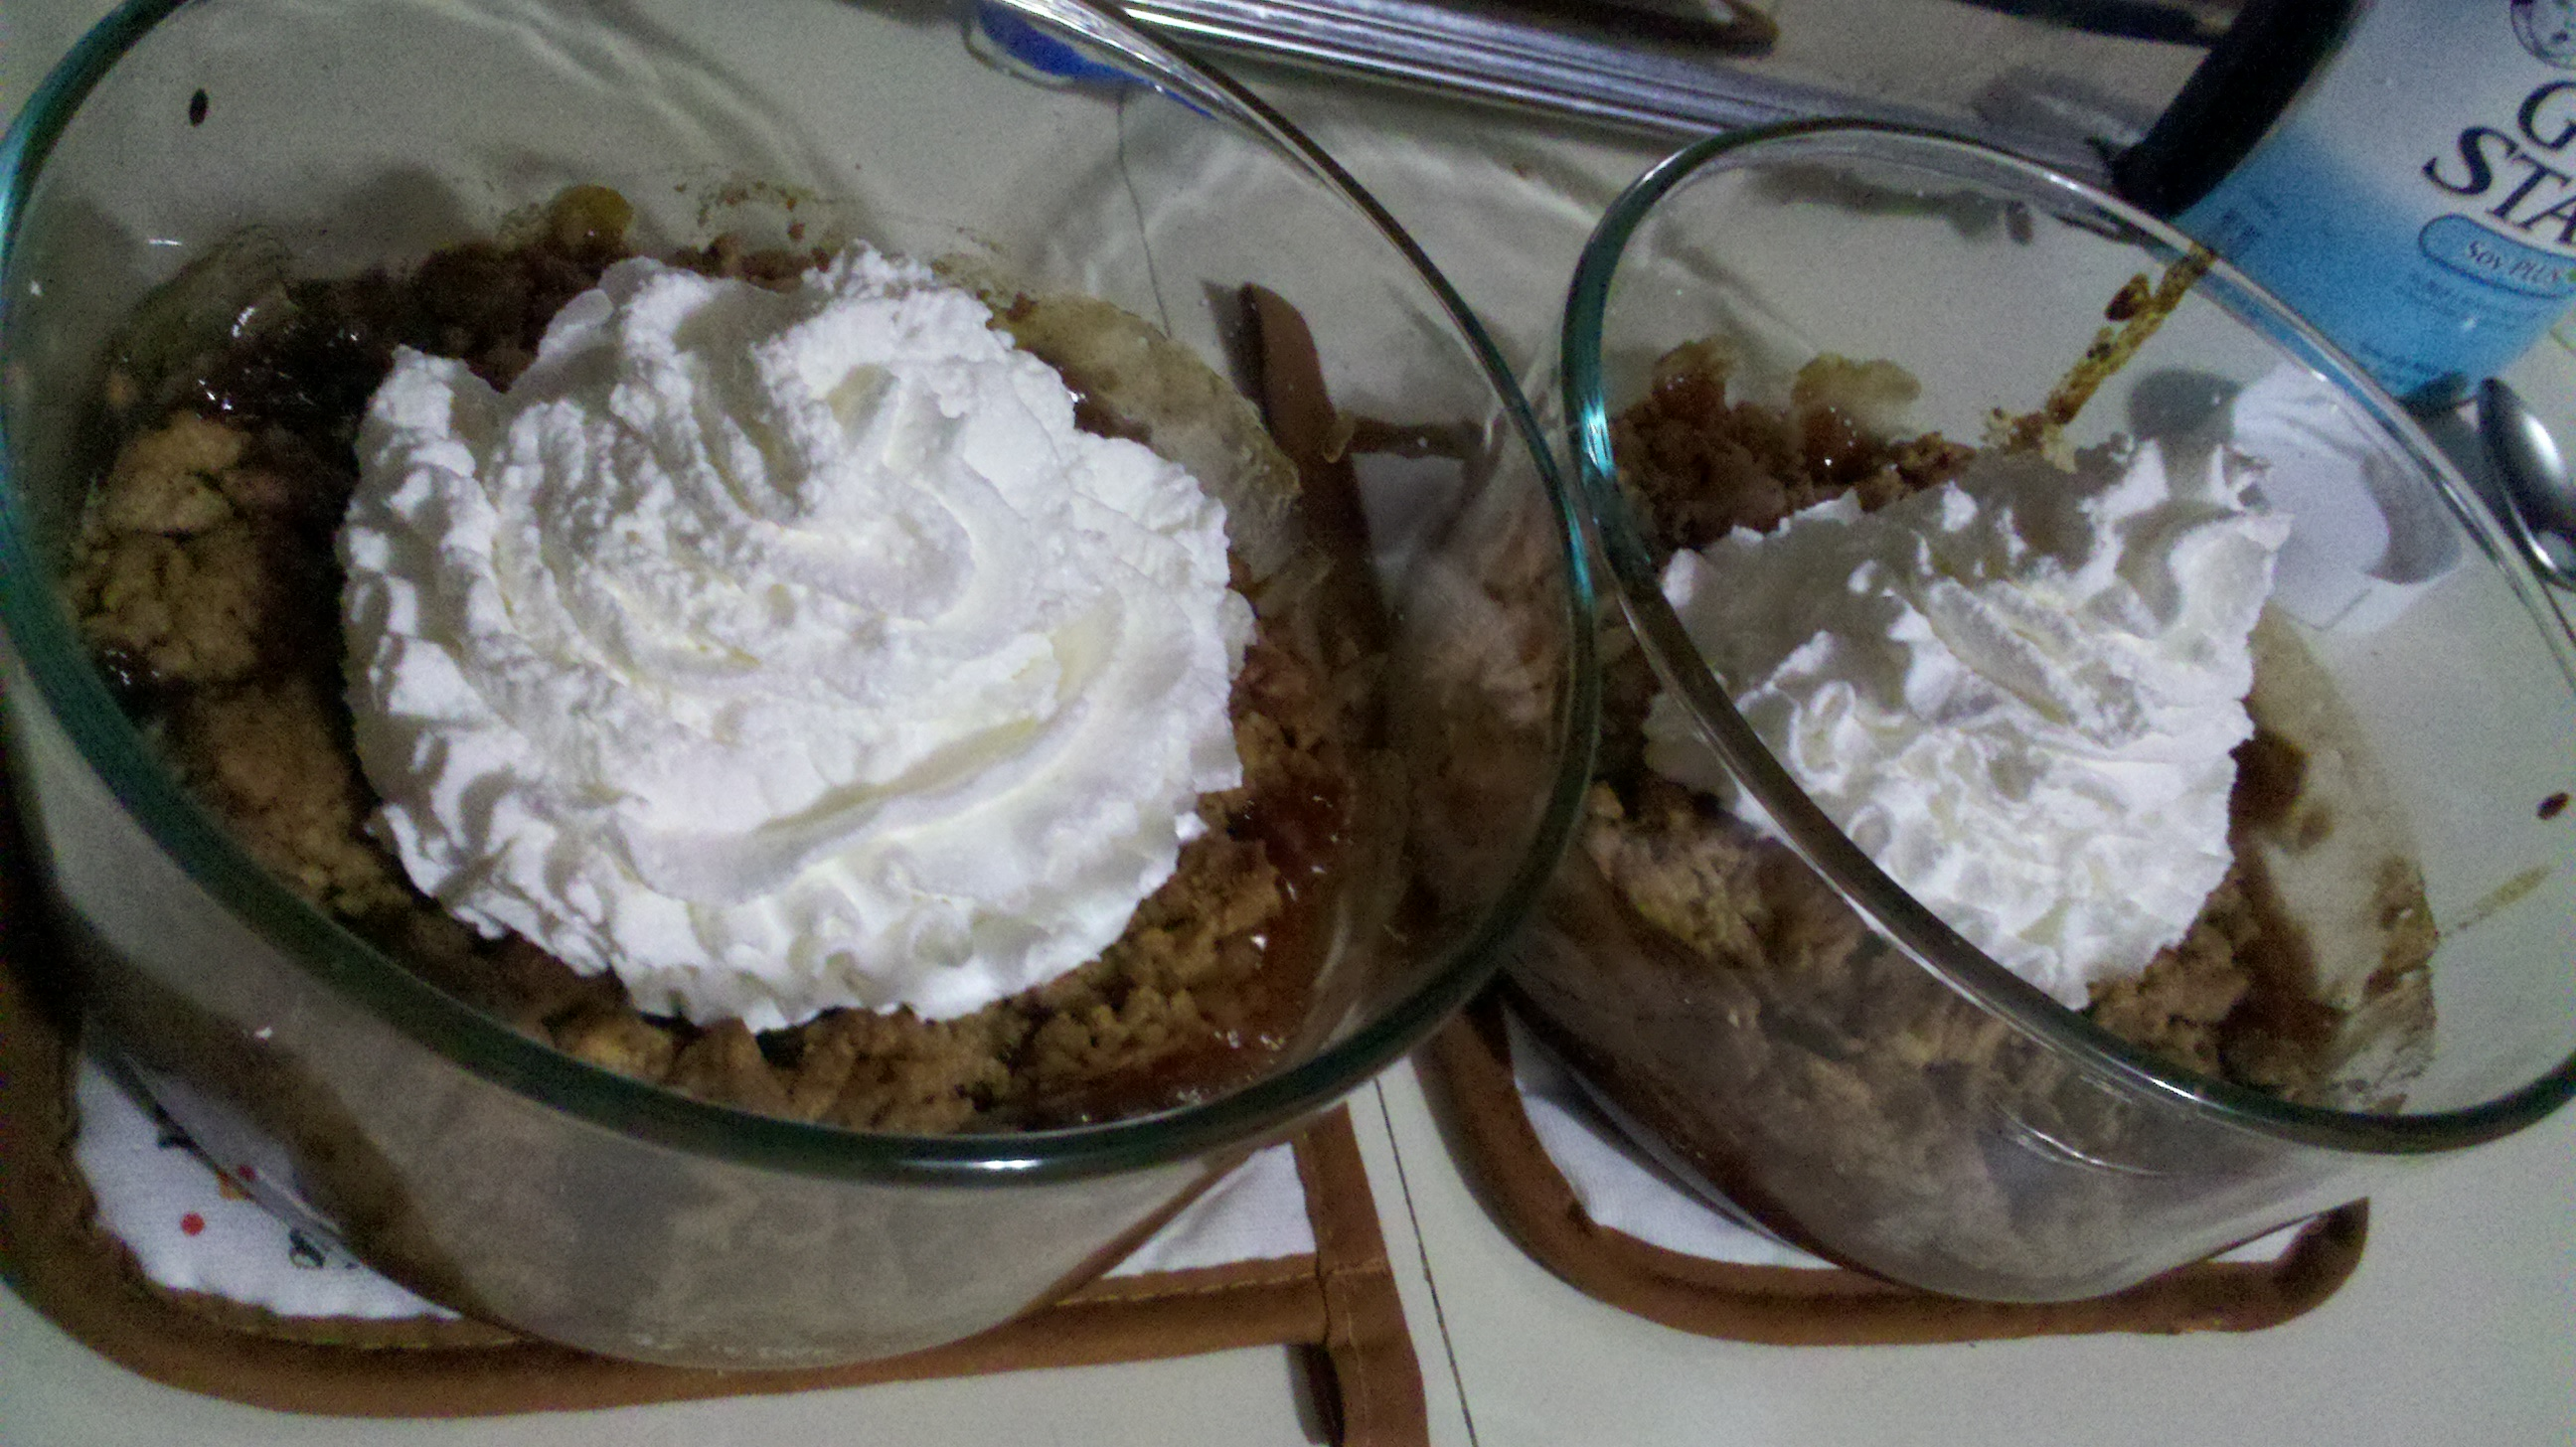 New Britain CT :: Yummy apple dessert I made today with apple pie like apples, a crumb topping and some whipped cream for fun! tastes awesome!